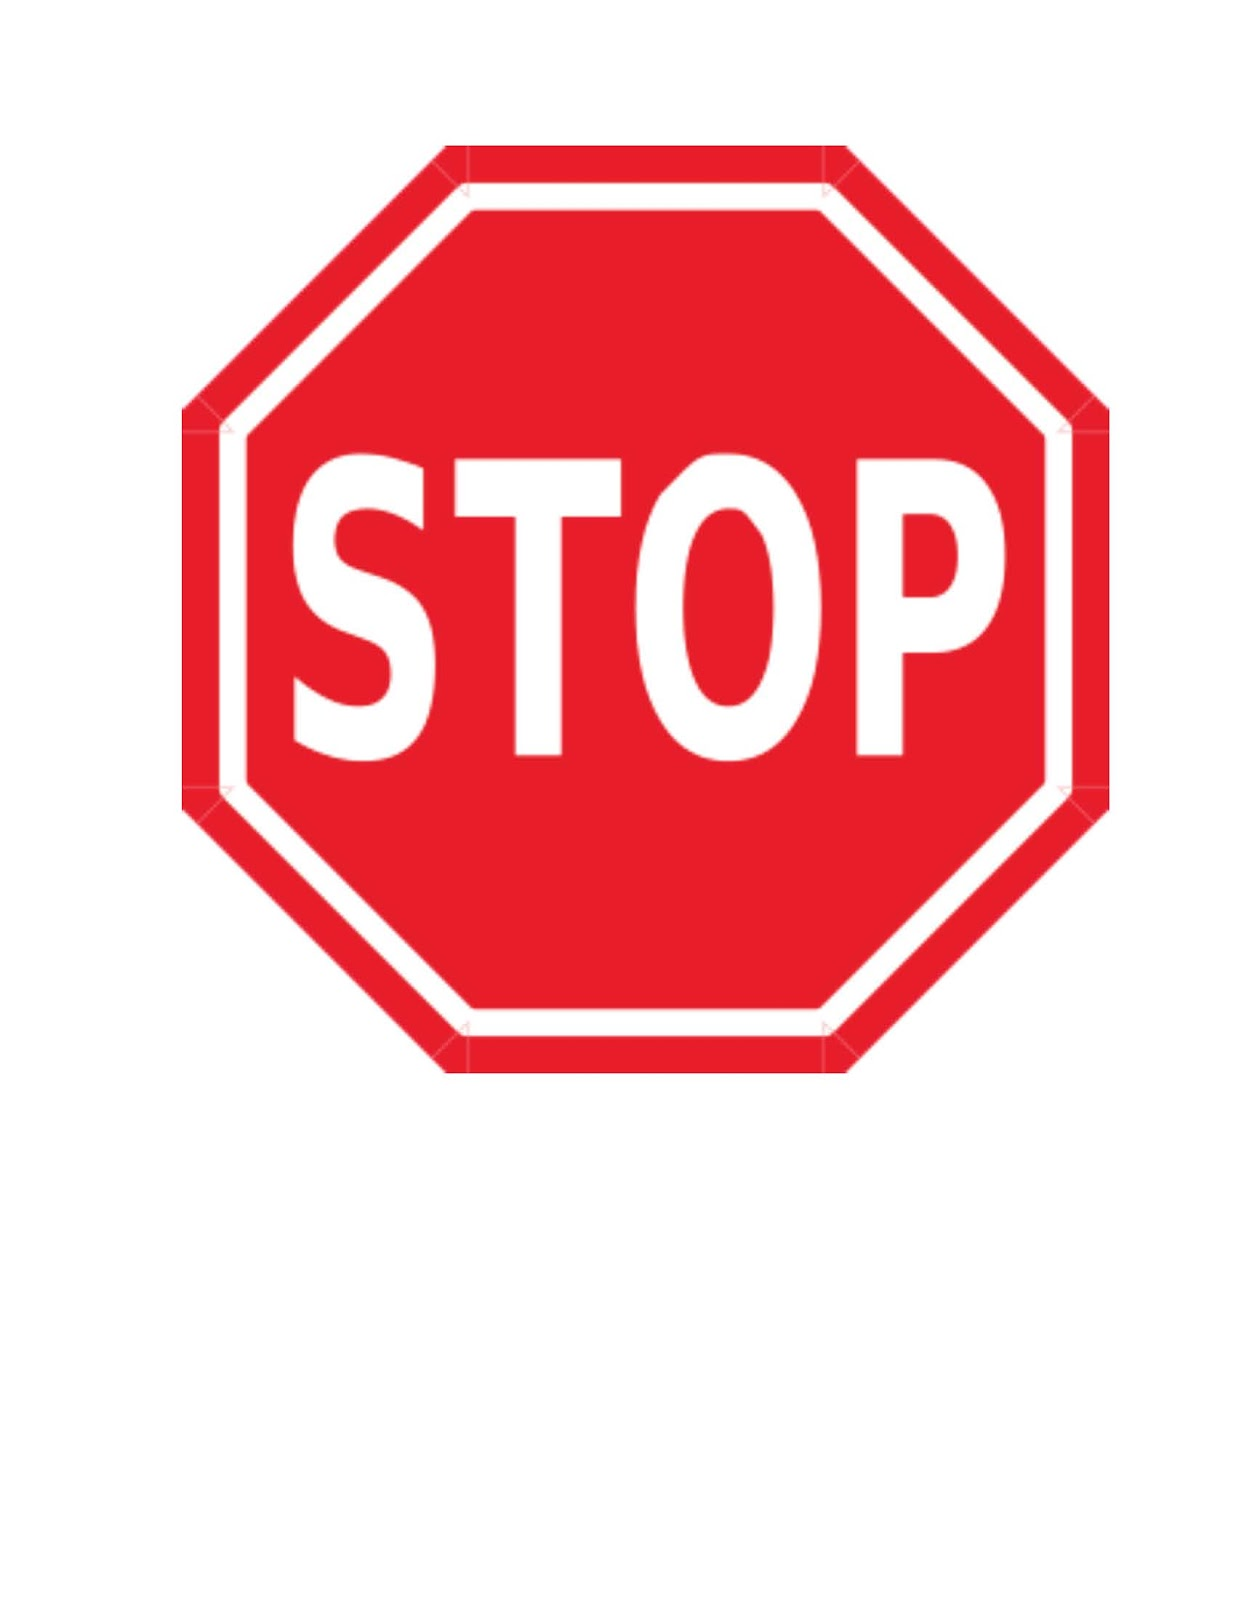 Free image download . Stop sign clip art